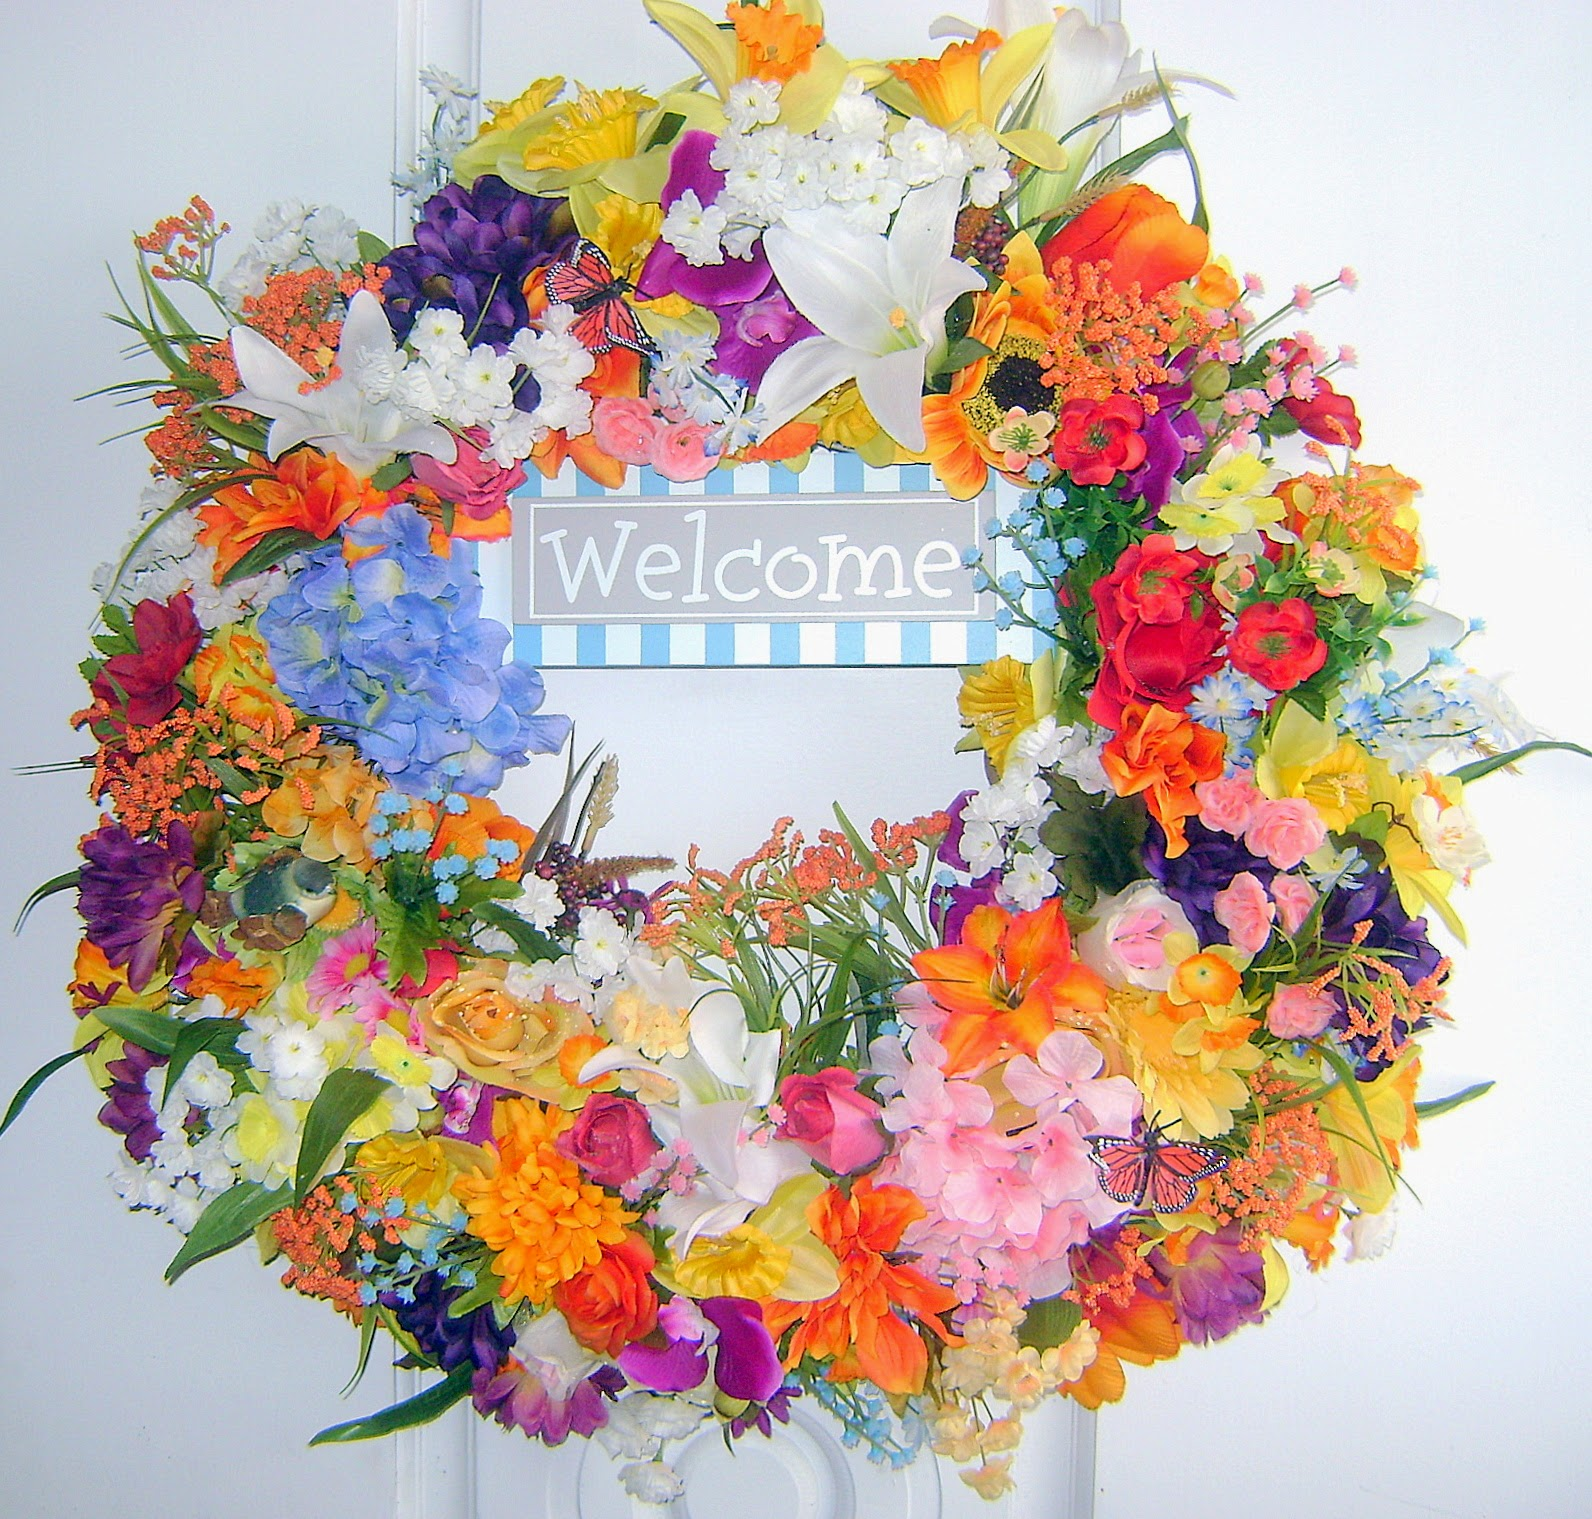 https://www.etsy.com/listing/184396500/welcome-to-my-garden-summer-wreath?ref=shop_home_active_1